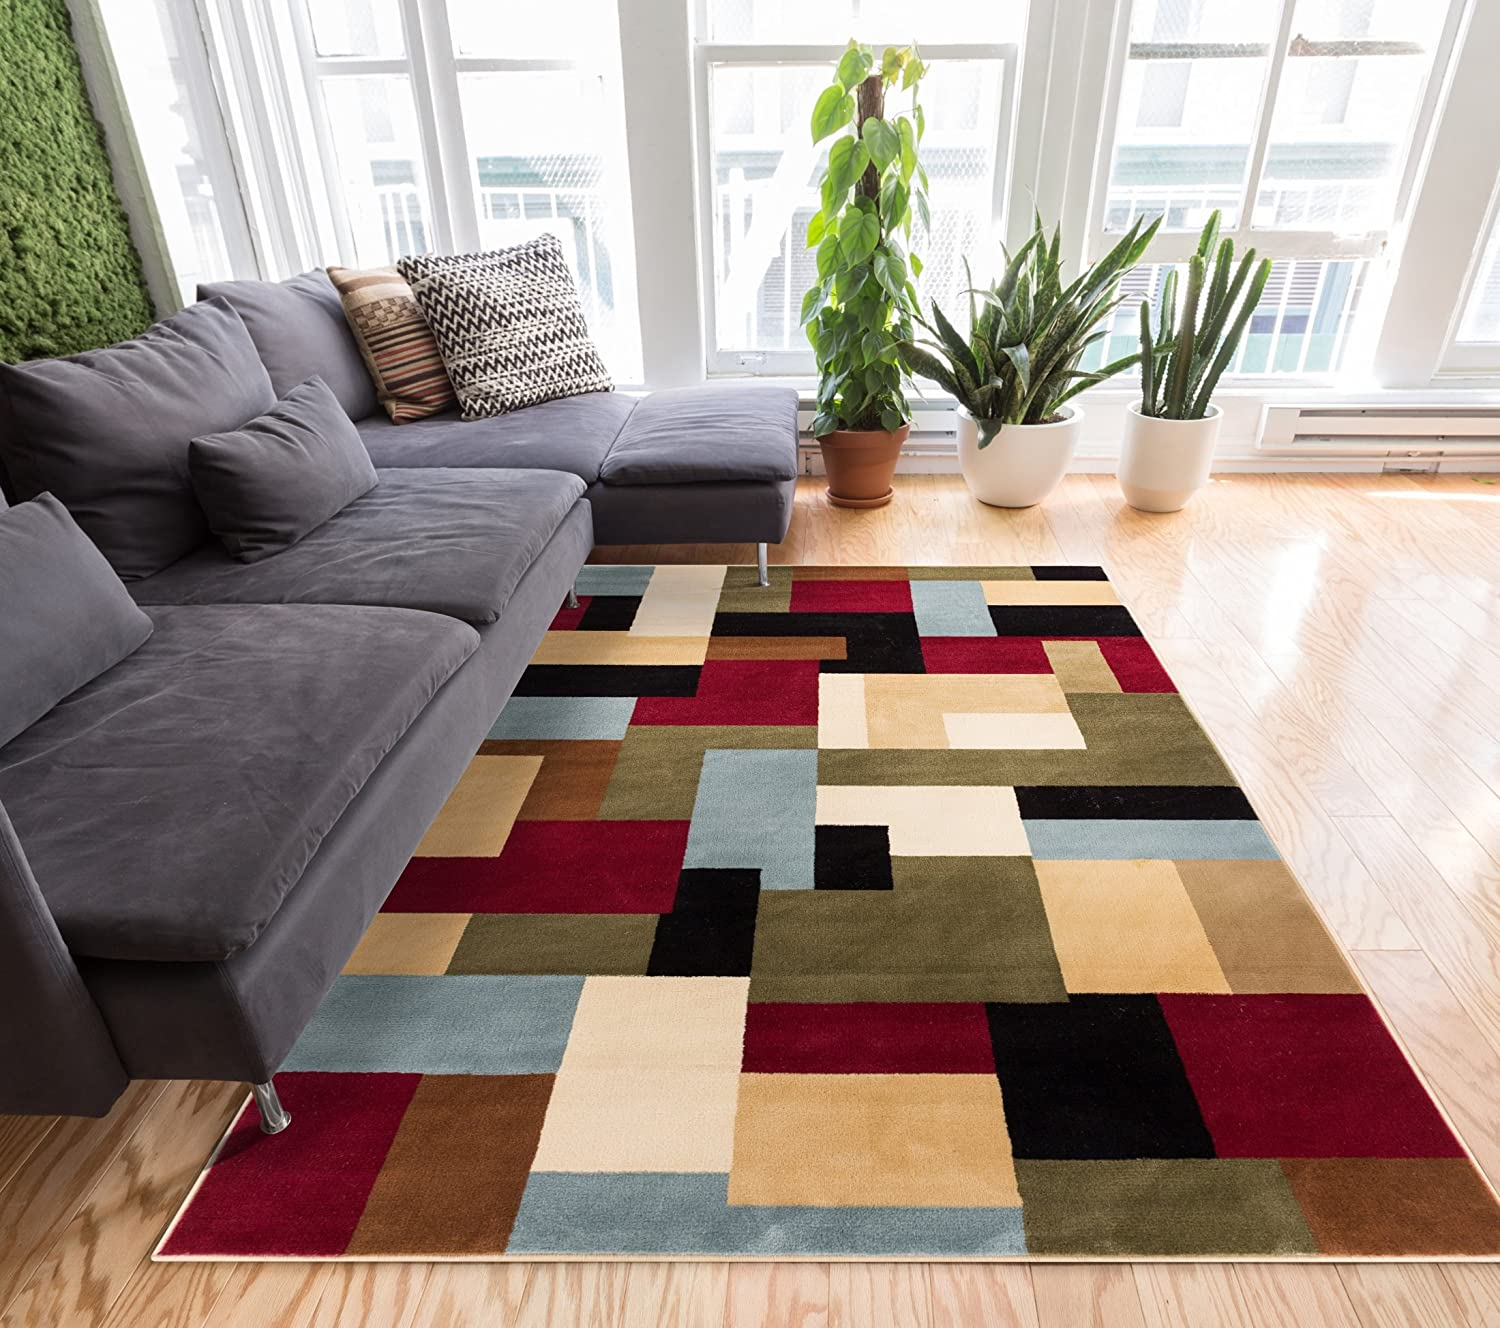 Amazon Imperial Mosaic Multicolor Geometric Modern Casual Area Rug 5x7 53 X 610 Easy To Clean Stain Fade Resistant Shed Free Abstract